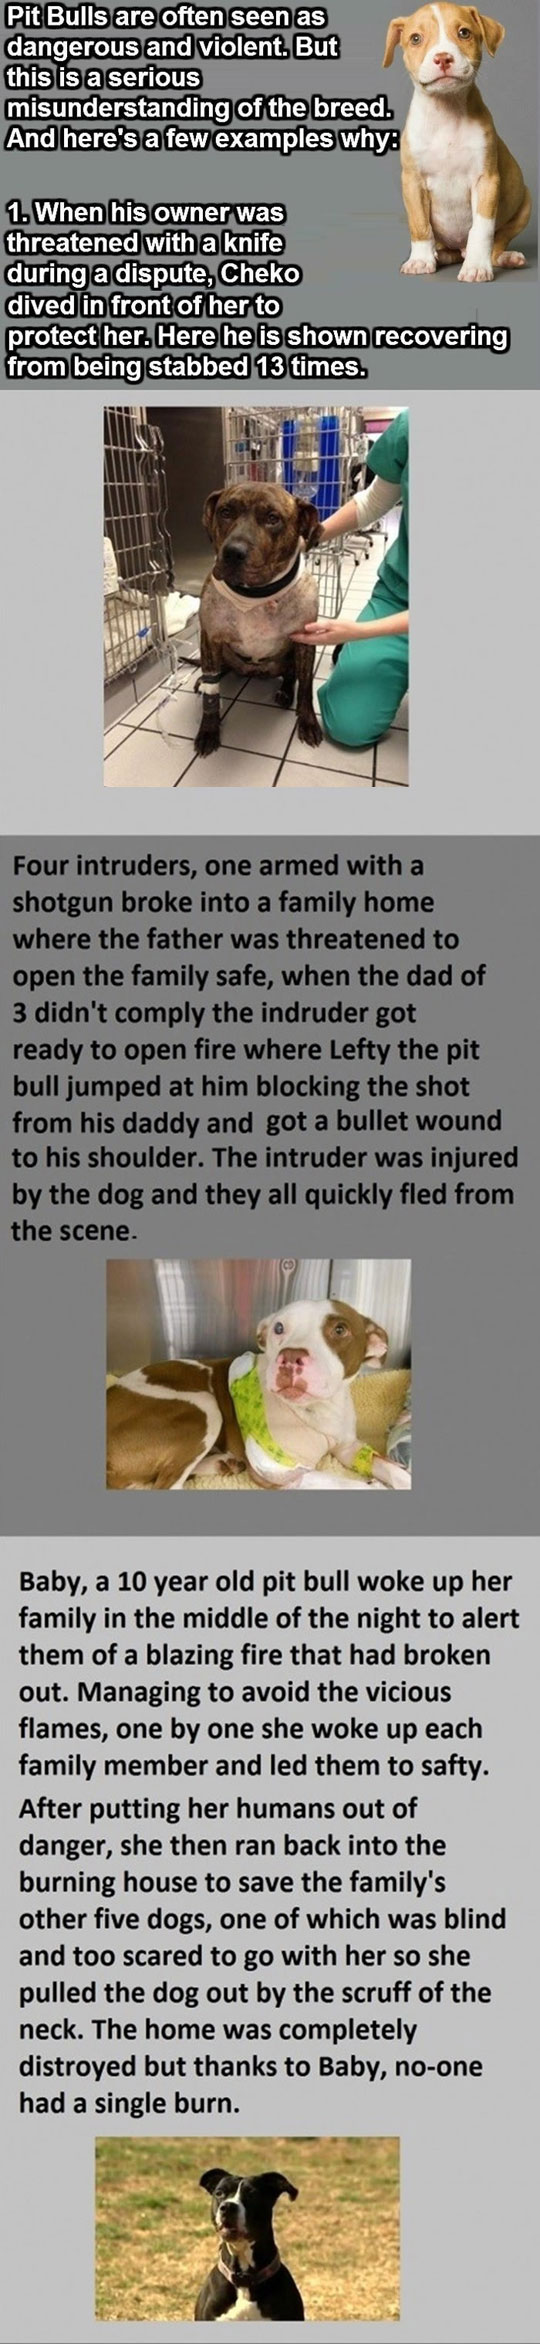 cool-pit-bull-hero-breed